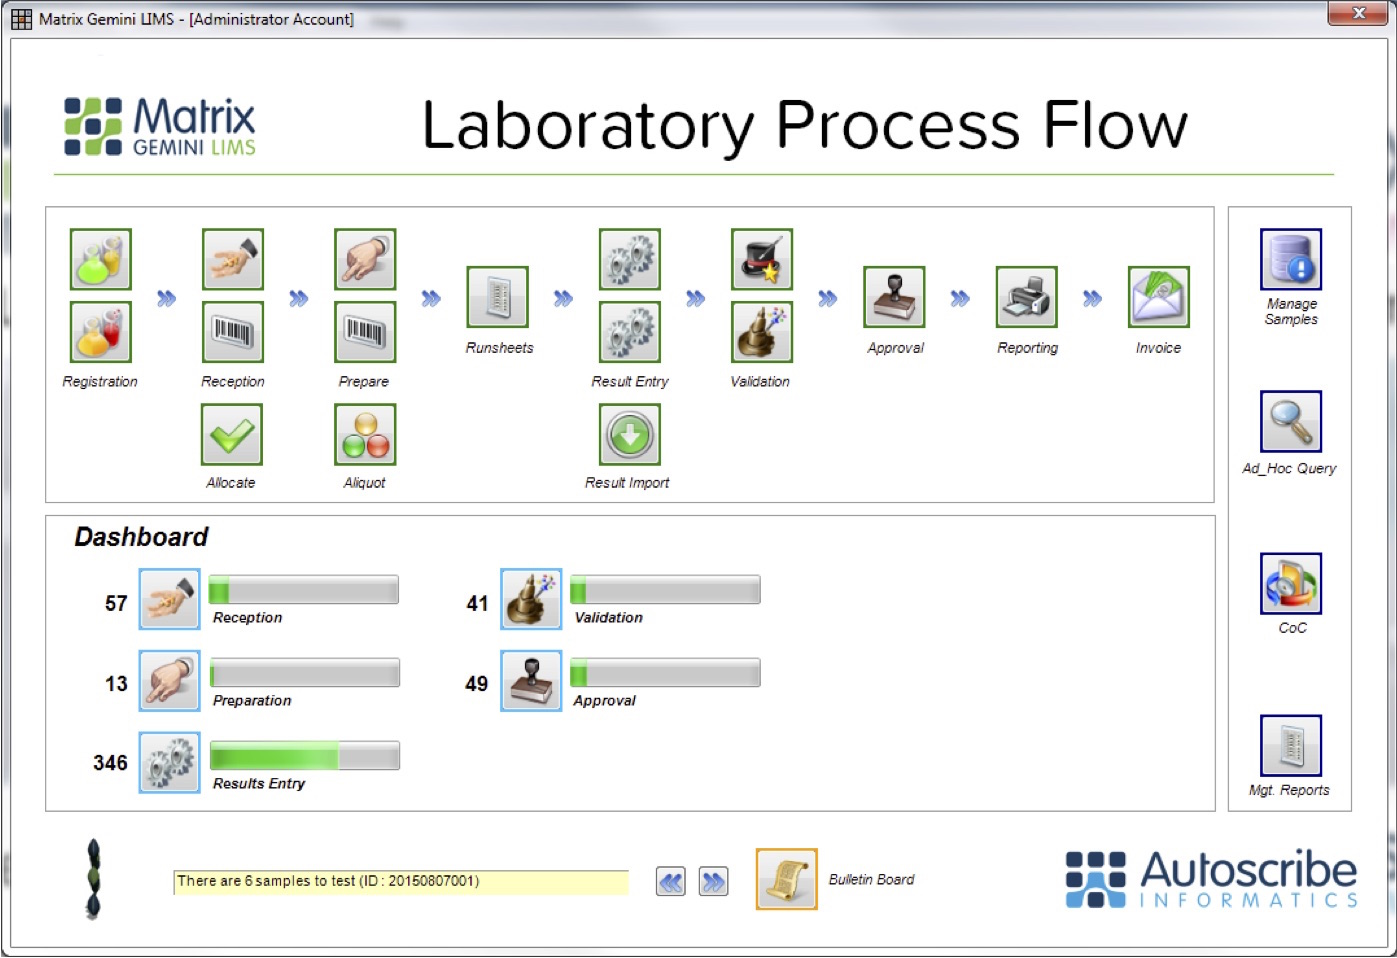 Laboratory Process Flow.jpg